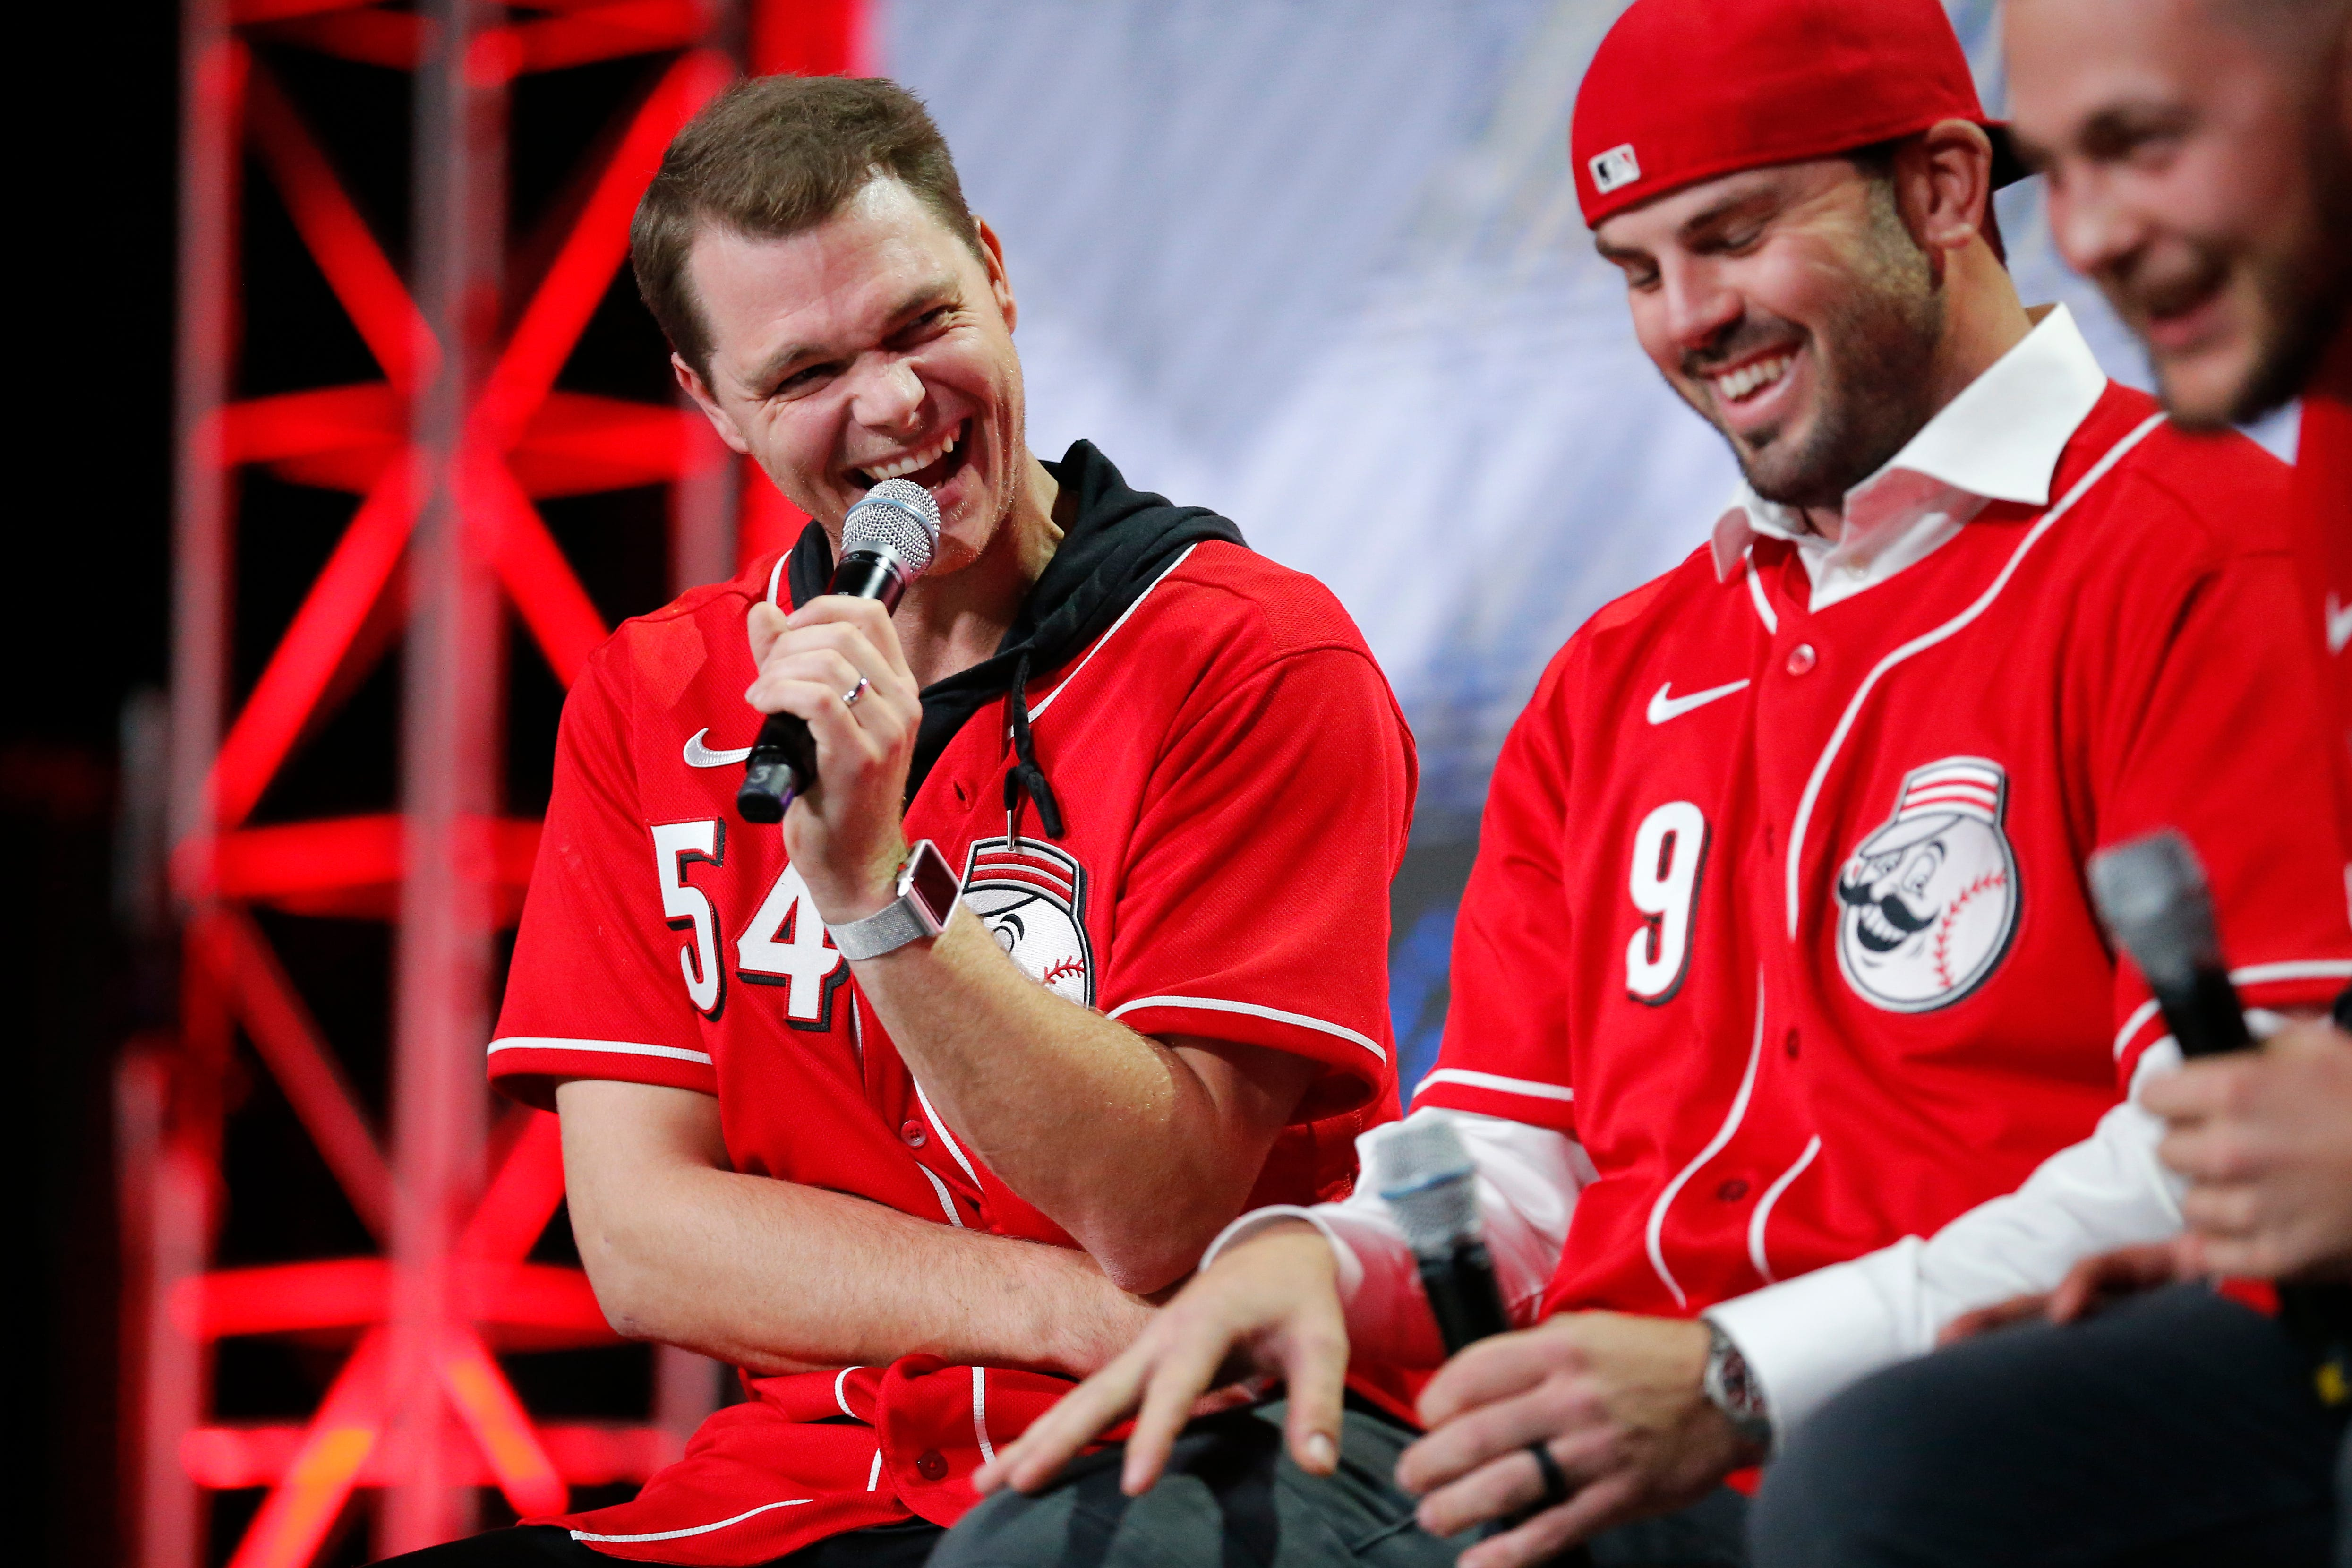 Photos: Mike Moustakas and the Cincinnati Reds kick off the 2020 MLB season at Redsfest